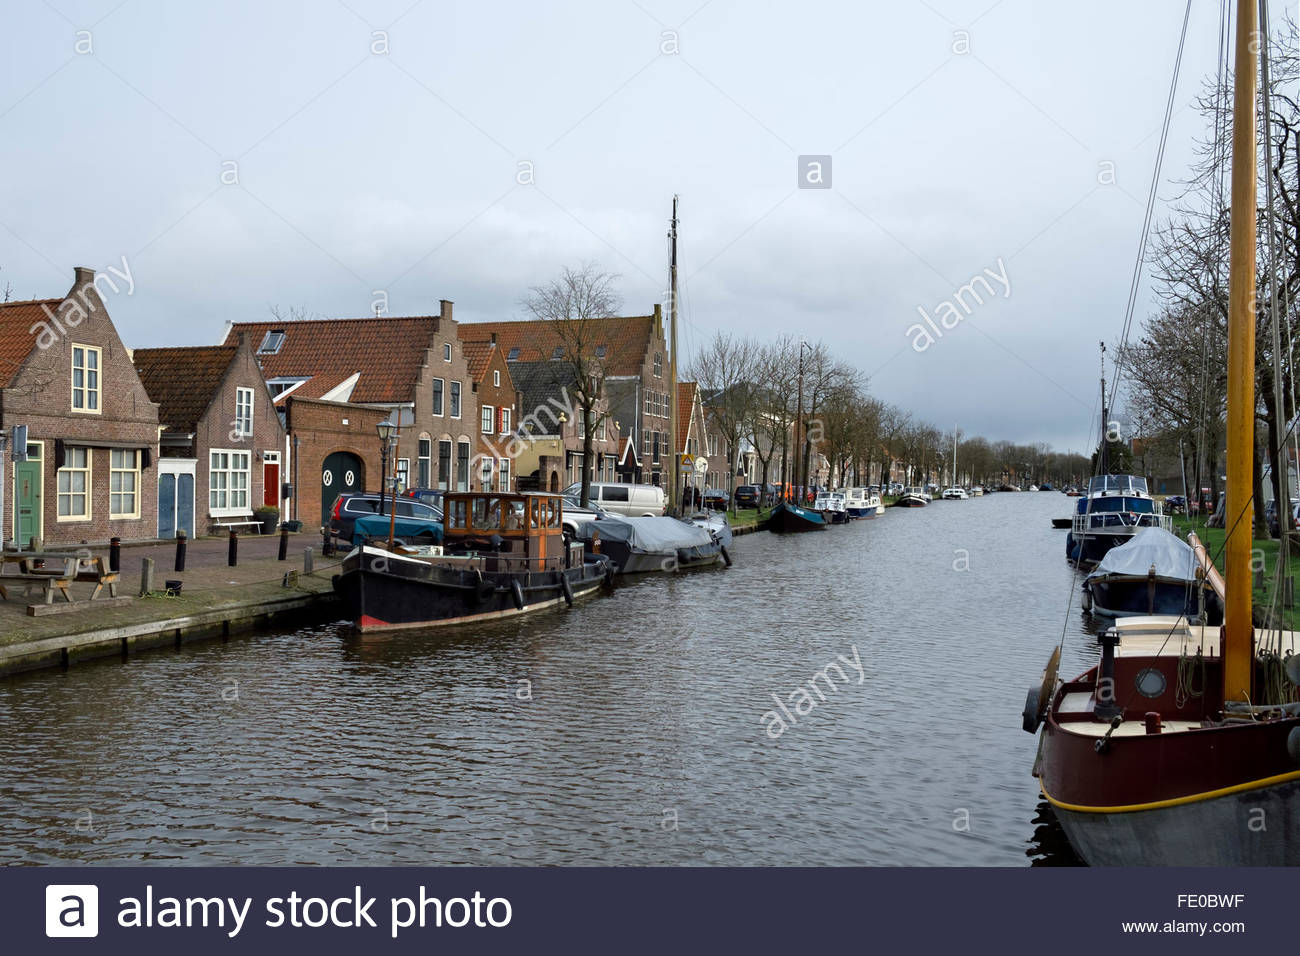 Boats are moored in the Nieuwehaven canal, by the old town section of Edam, province of North Holland, Netherlands. - Stock Image